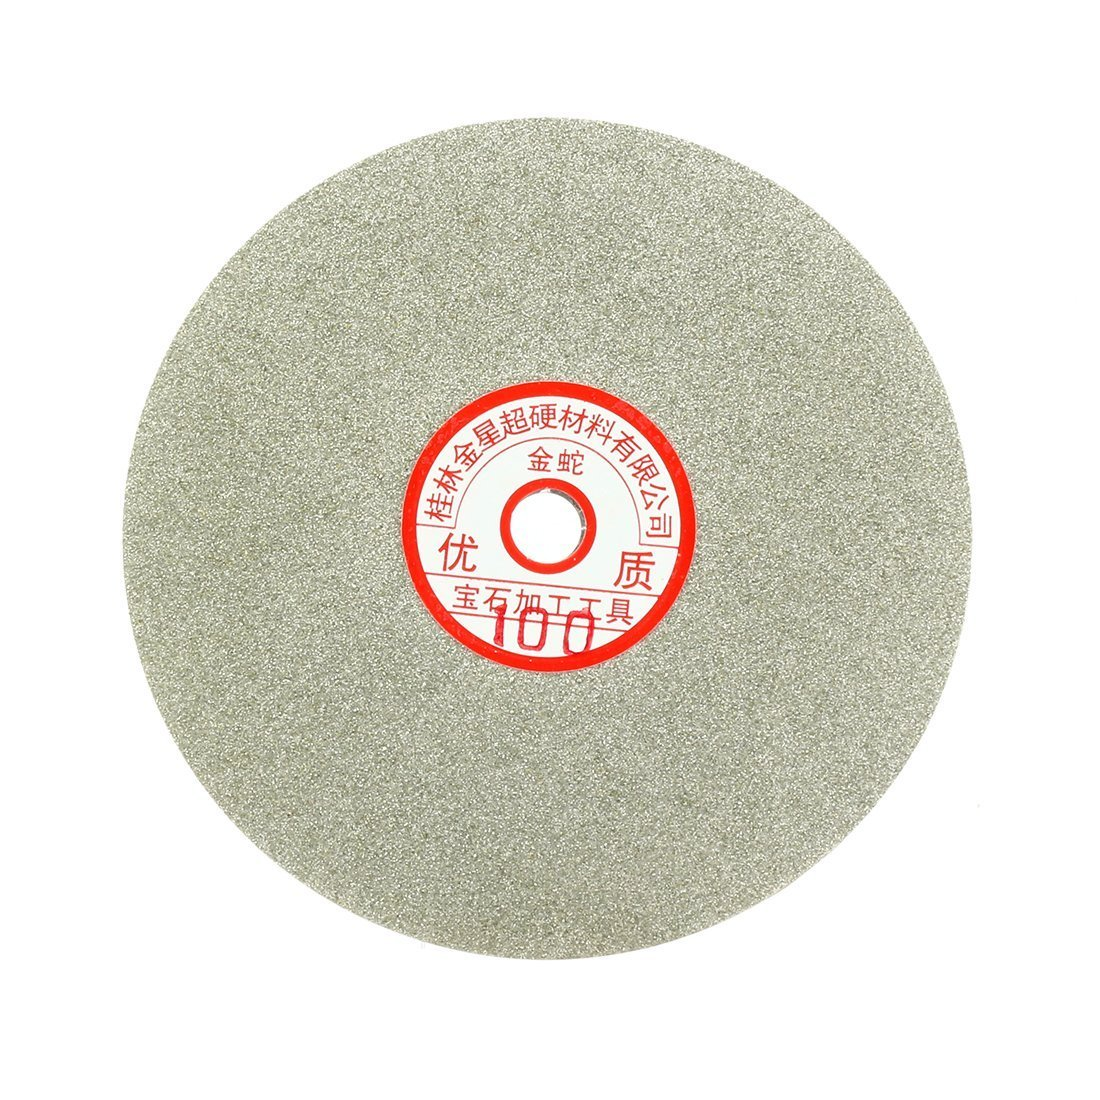 Sourcingmap 6-inch Grit 100 Diamond Coated Flat Lap Wheel Grinding Sanding Polishing Disc a17030900ux1360